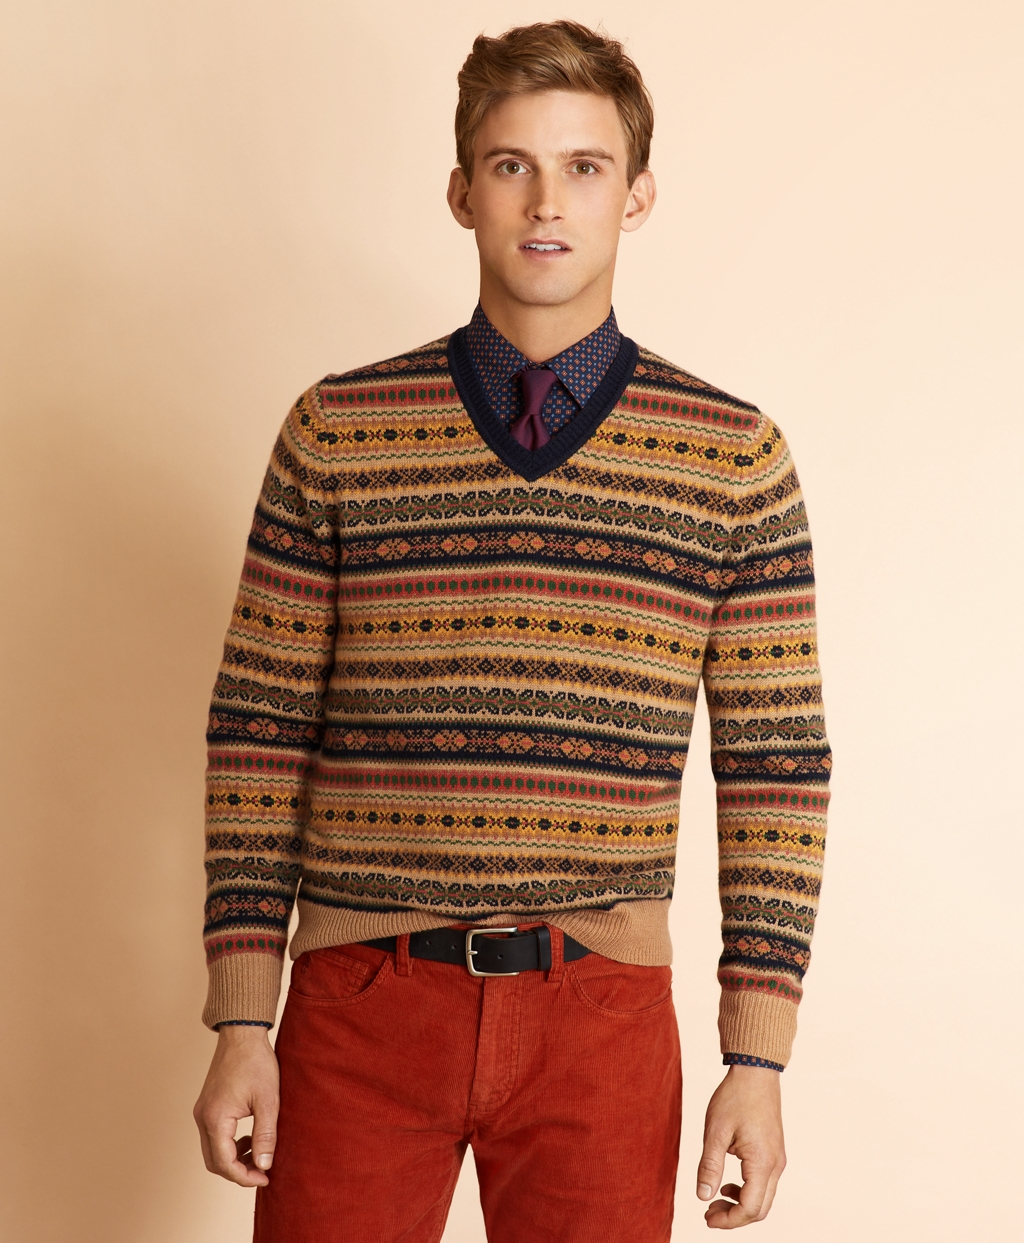 Men's Vintage Sweaters – 1920s to 1960s Retro Jumpers Brooks Brothers Mens Wool-Blend V-Neck Fair Isle Sweater $67.12 AT vintagedancer.com